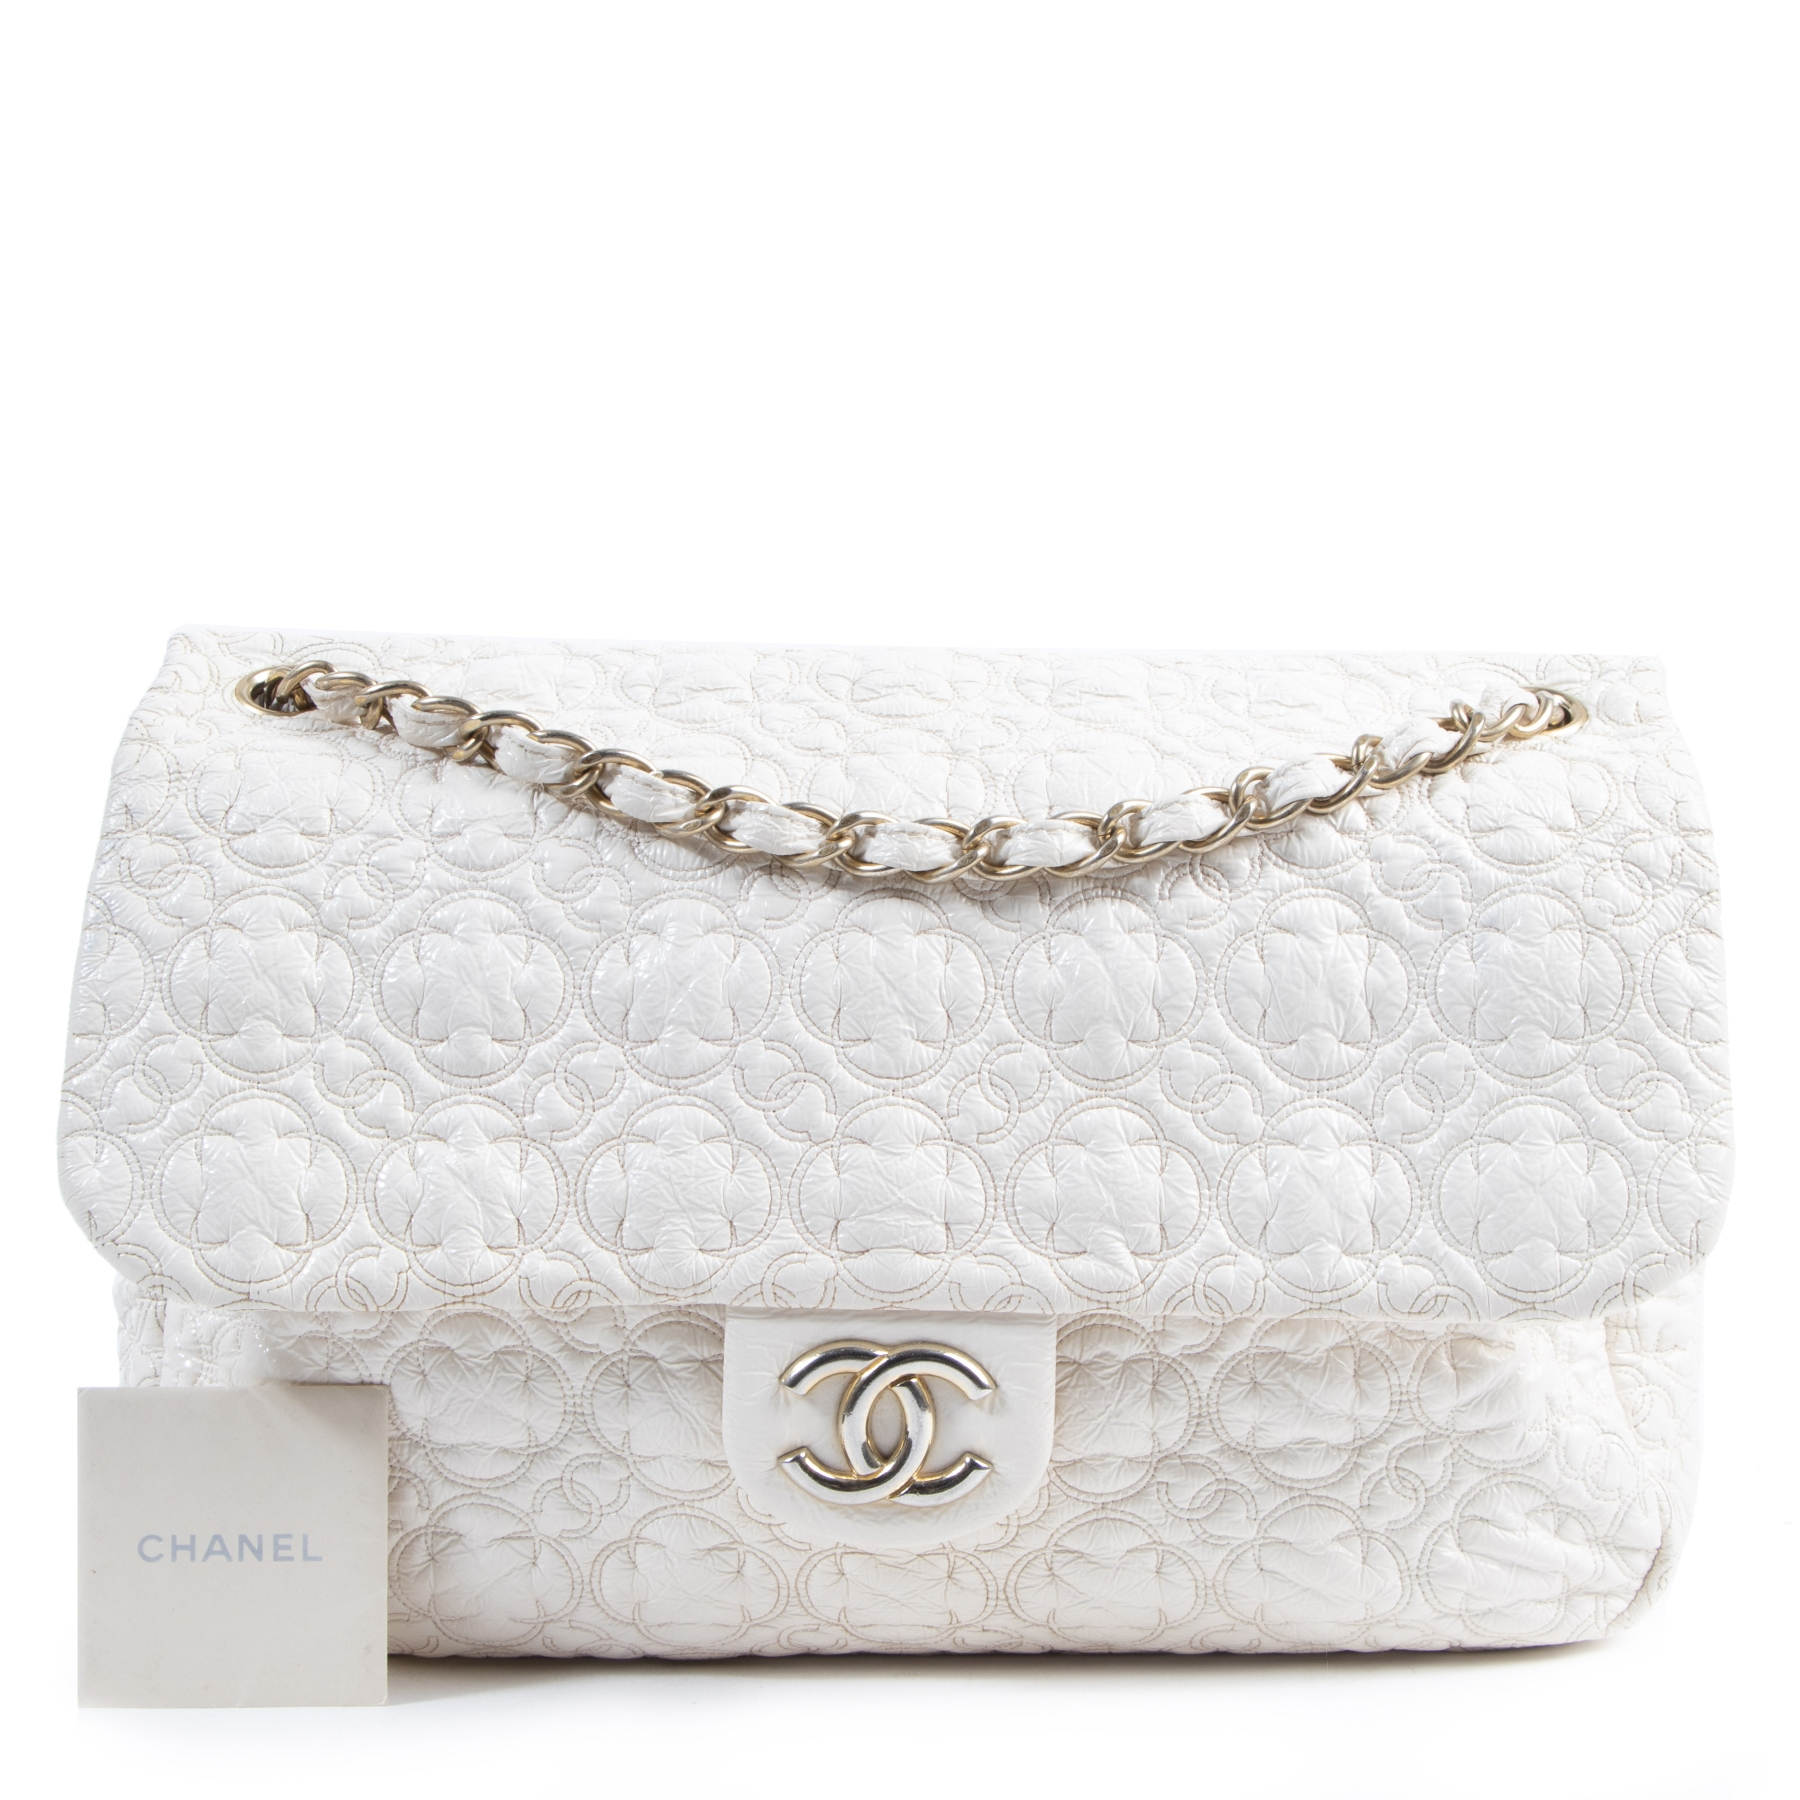 Are you looking for an authentic designer Chanel White Vinyl Rock in Moscow Jumbo Flap Bag